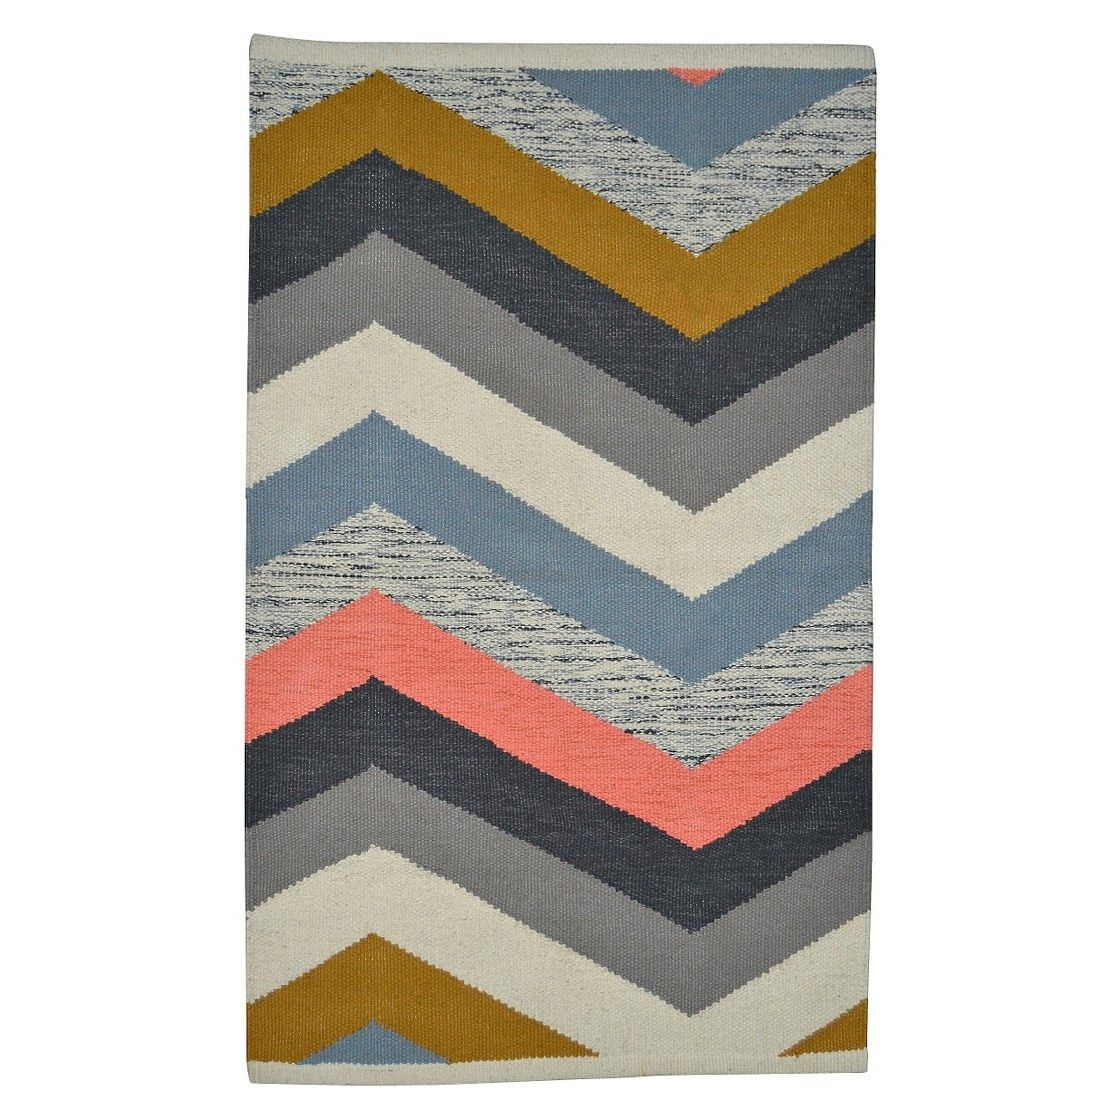 Chevron Kitchen Rug: Nate Berkus 2x3' Multi Chevron Accent Rugs